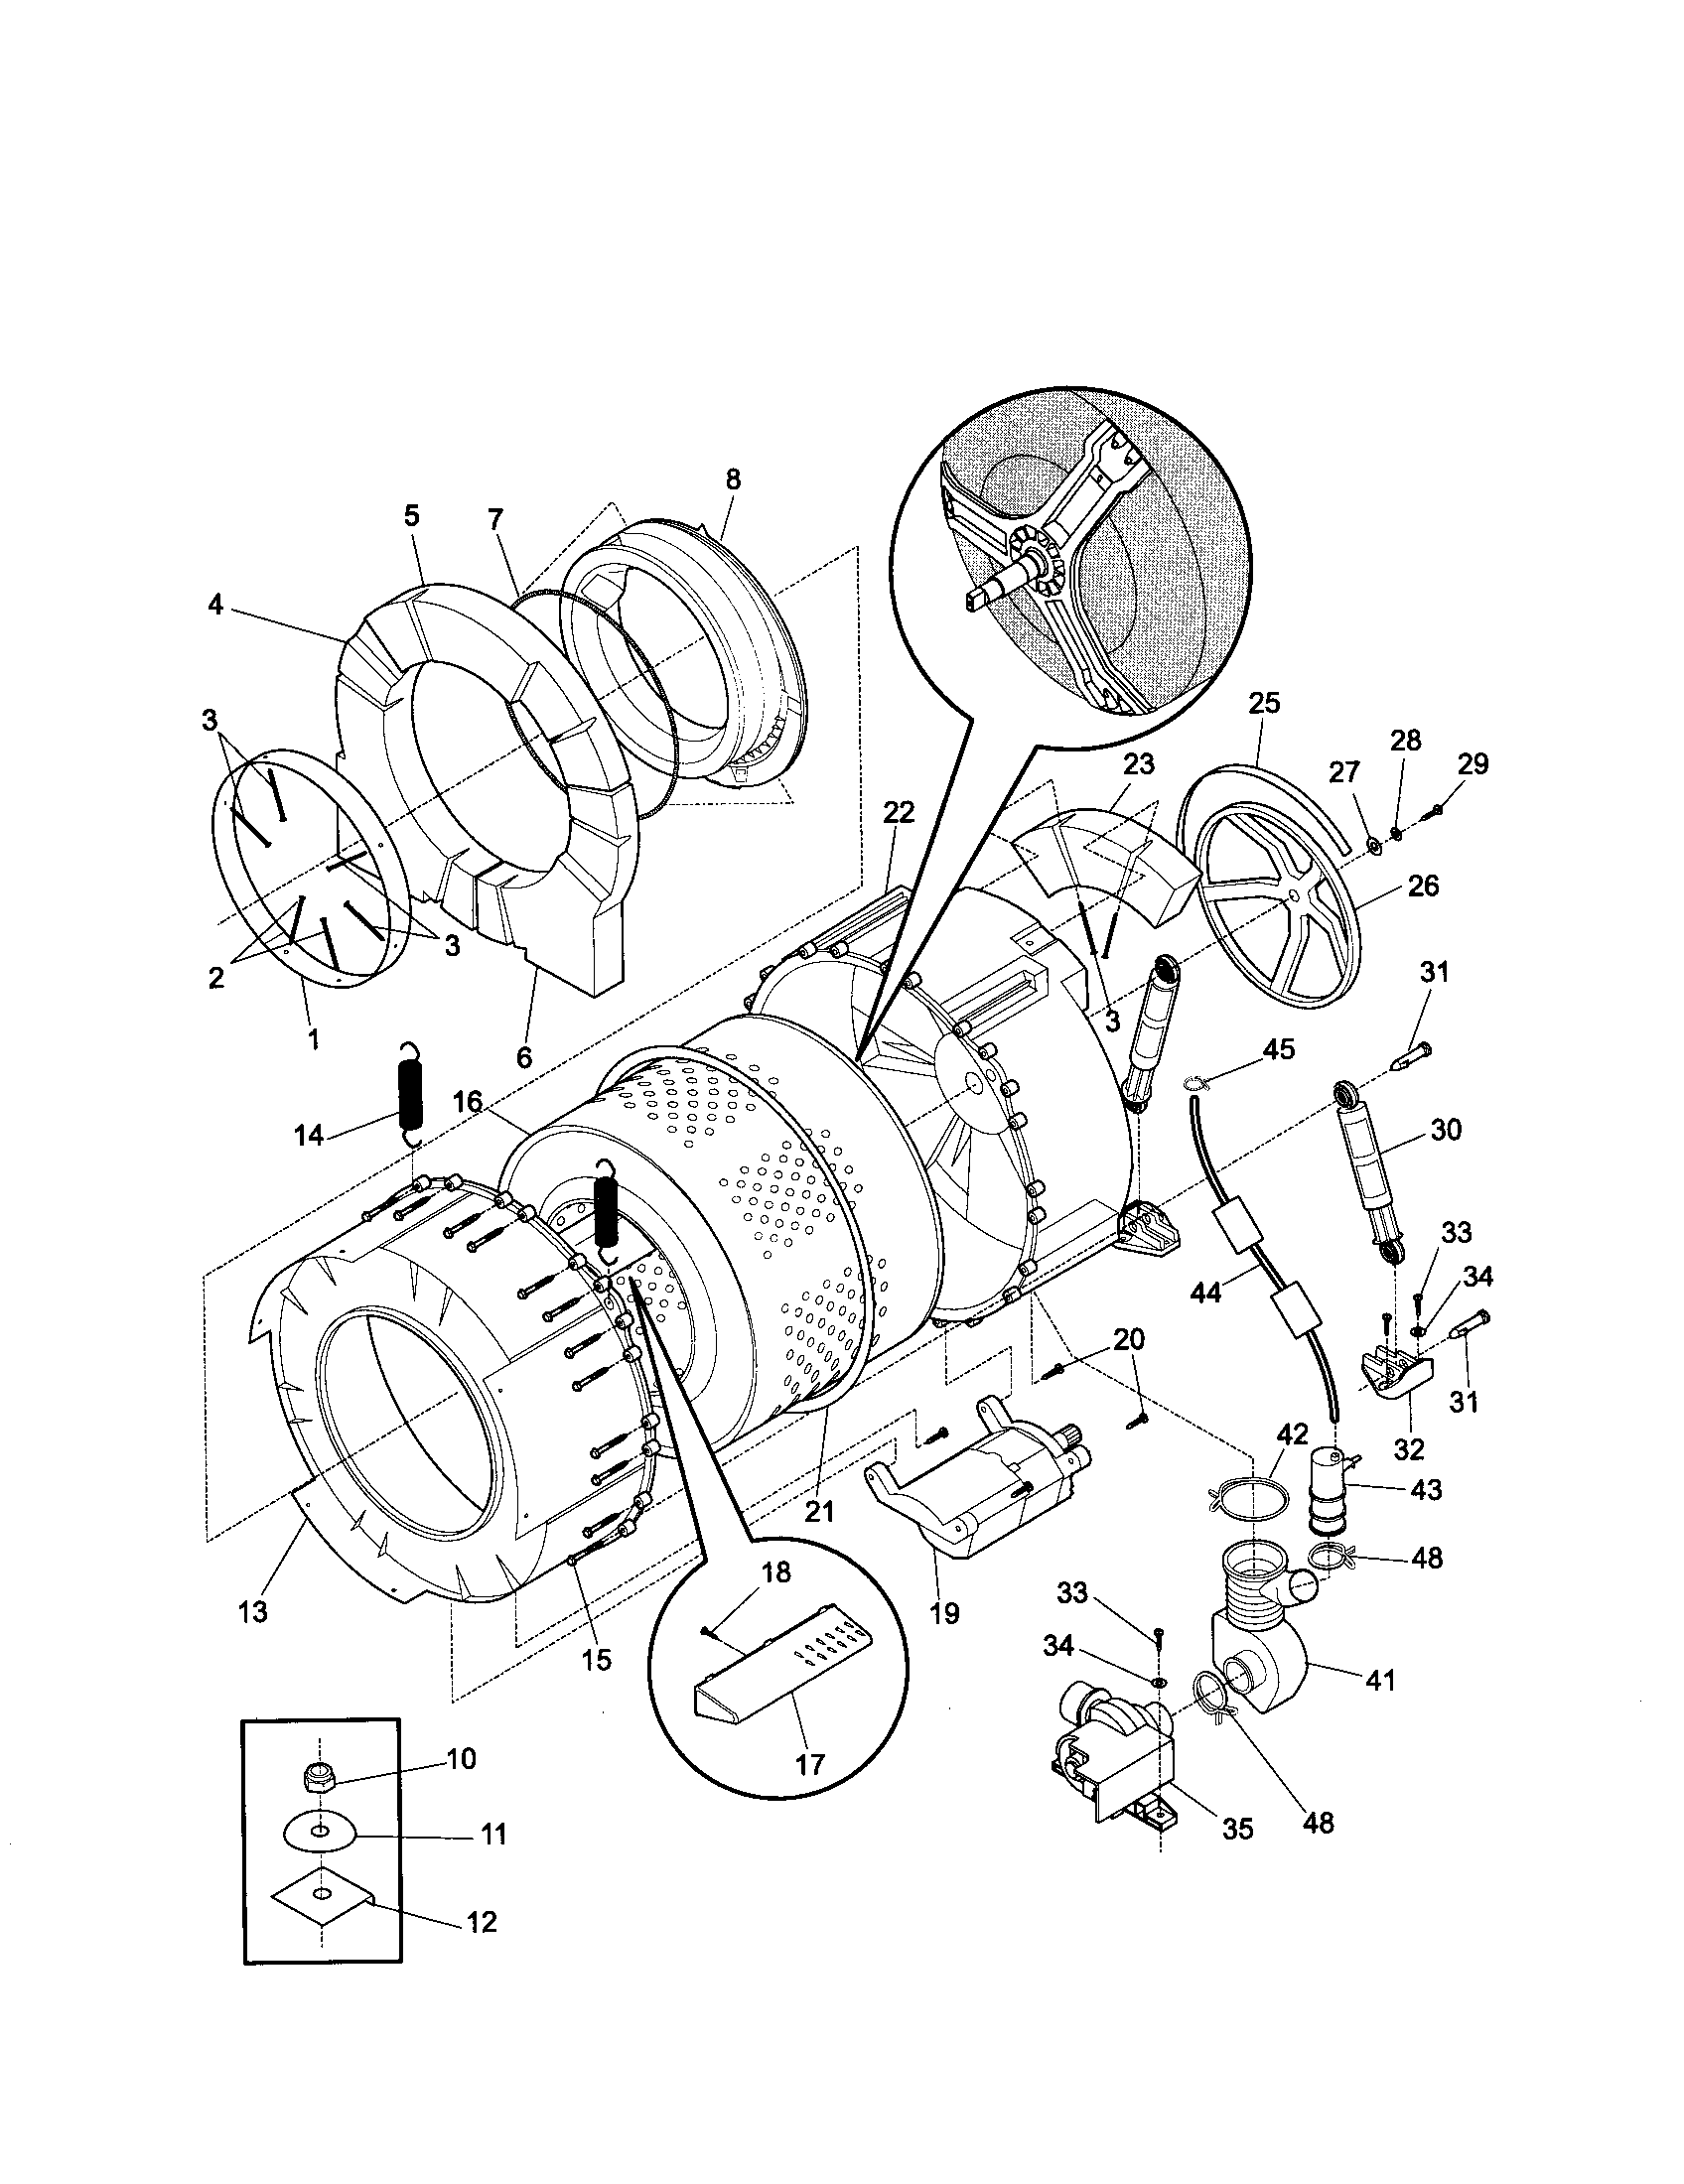 frigidaire front load washer parts diagram wiring electric guitar replacement schematic kenmore model 41729042992 residential washers genuine